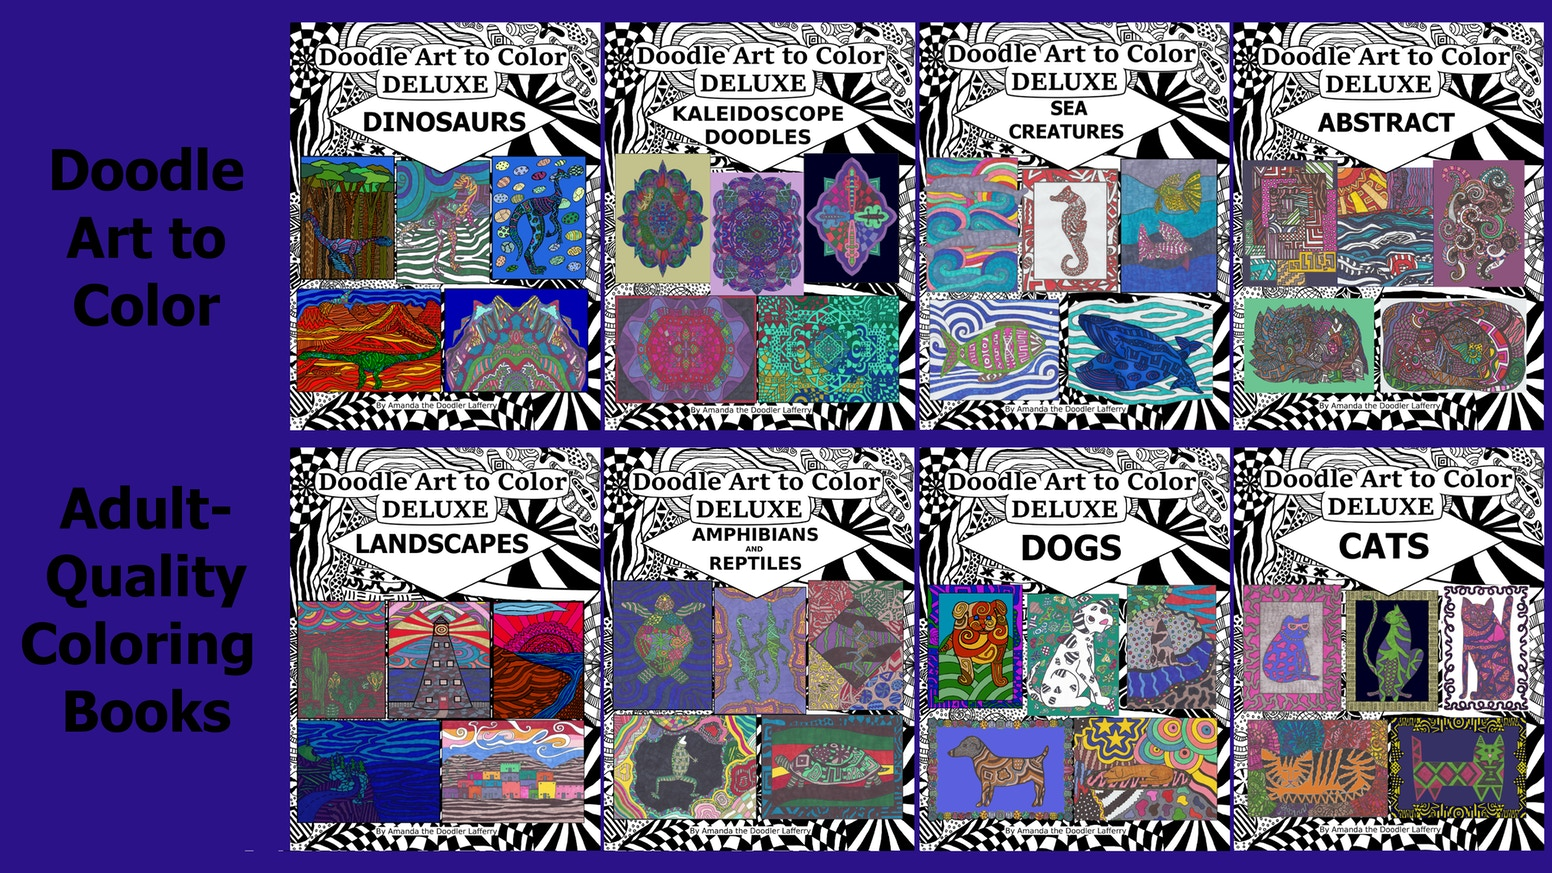 Doodle Art To Color Is A Series Of Adult Quality Coloring Books Featuring Cats Dogs Lizards Turtles Landscapes Dinosaurs And More